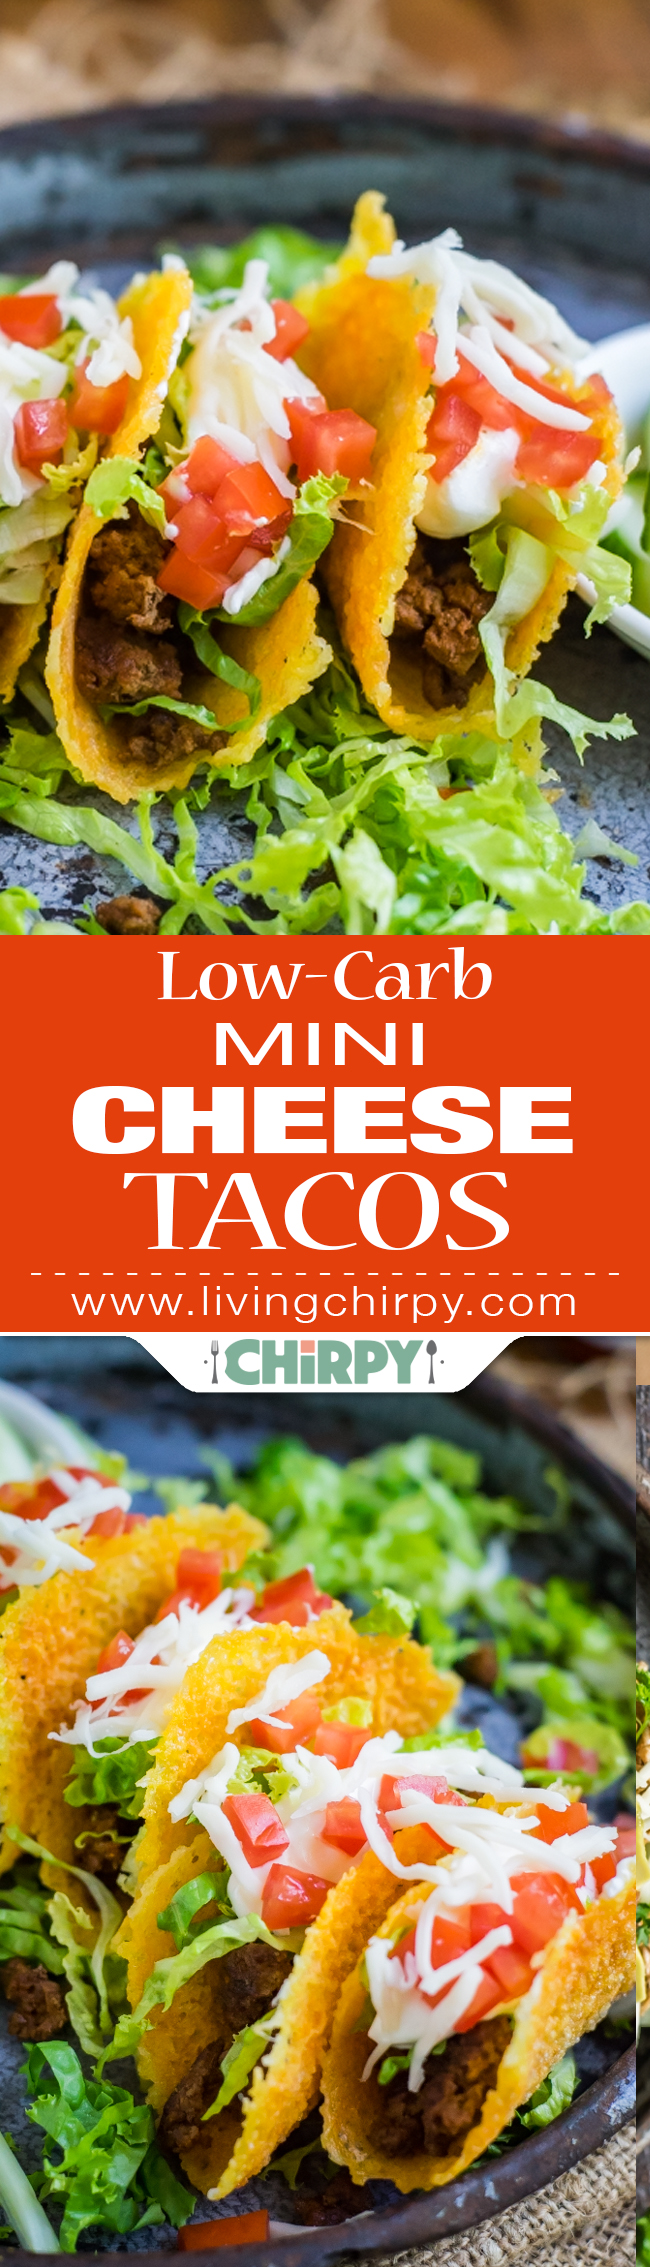 Low-Carb Mini Cheese Tacos